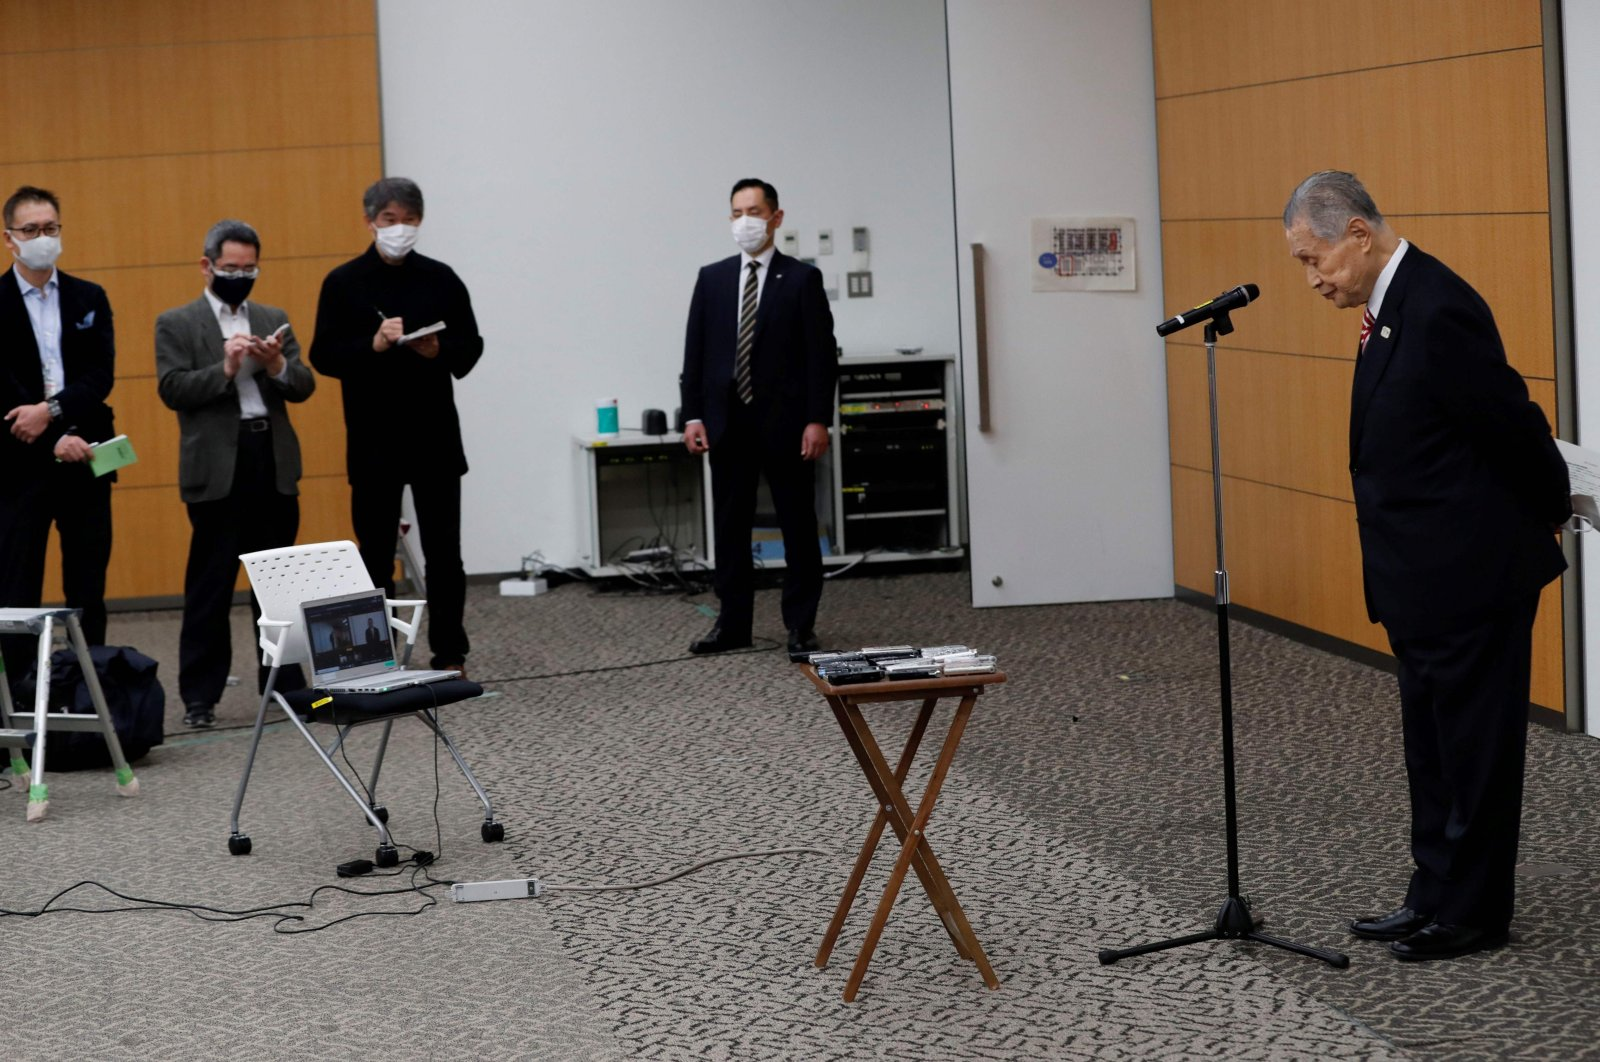 Tokyo 2020 president Yoshiro Mori (R) bows his head after a news conference in Tokyo, Feb. 4, 2021. (AFP Photo)